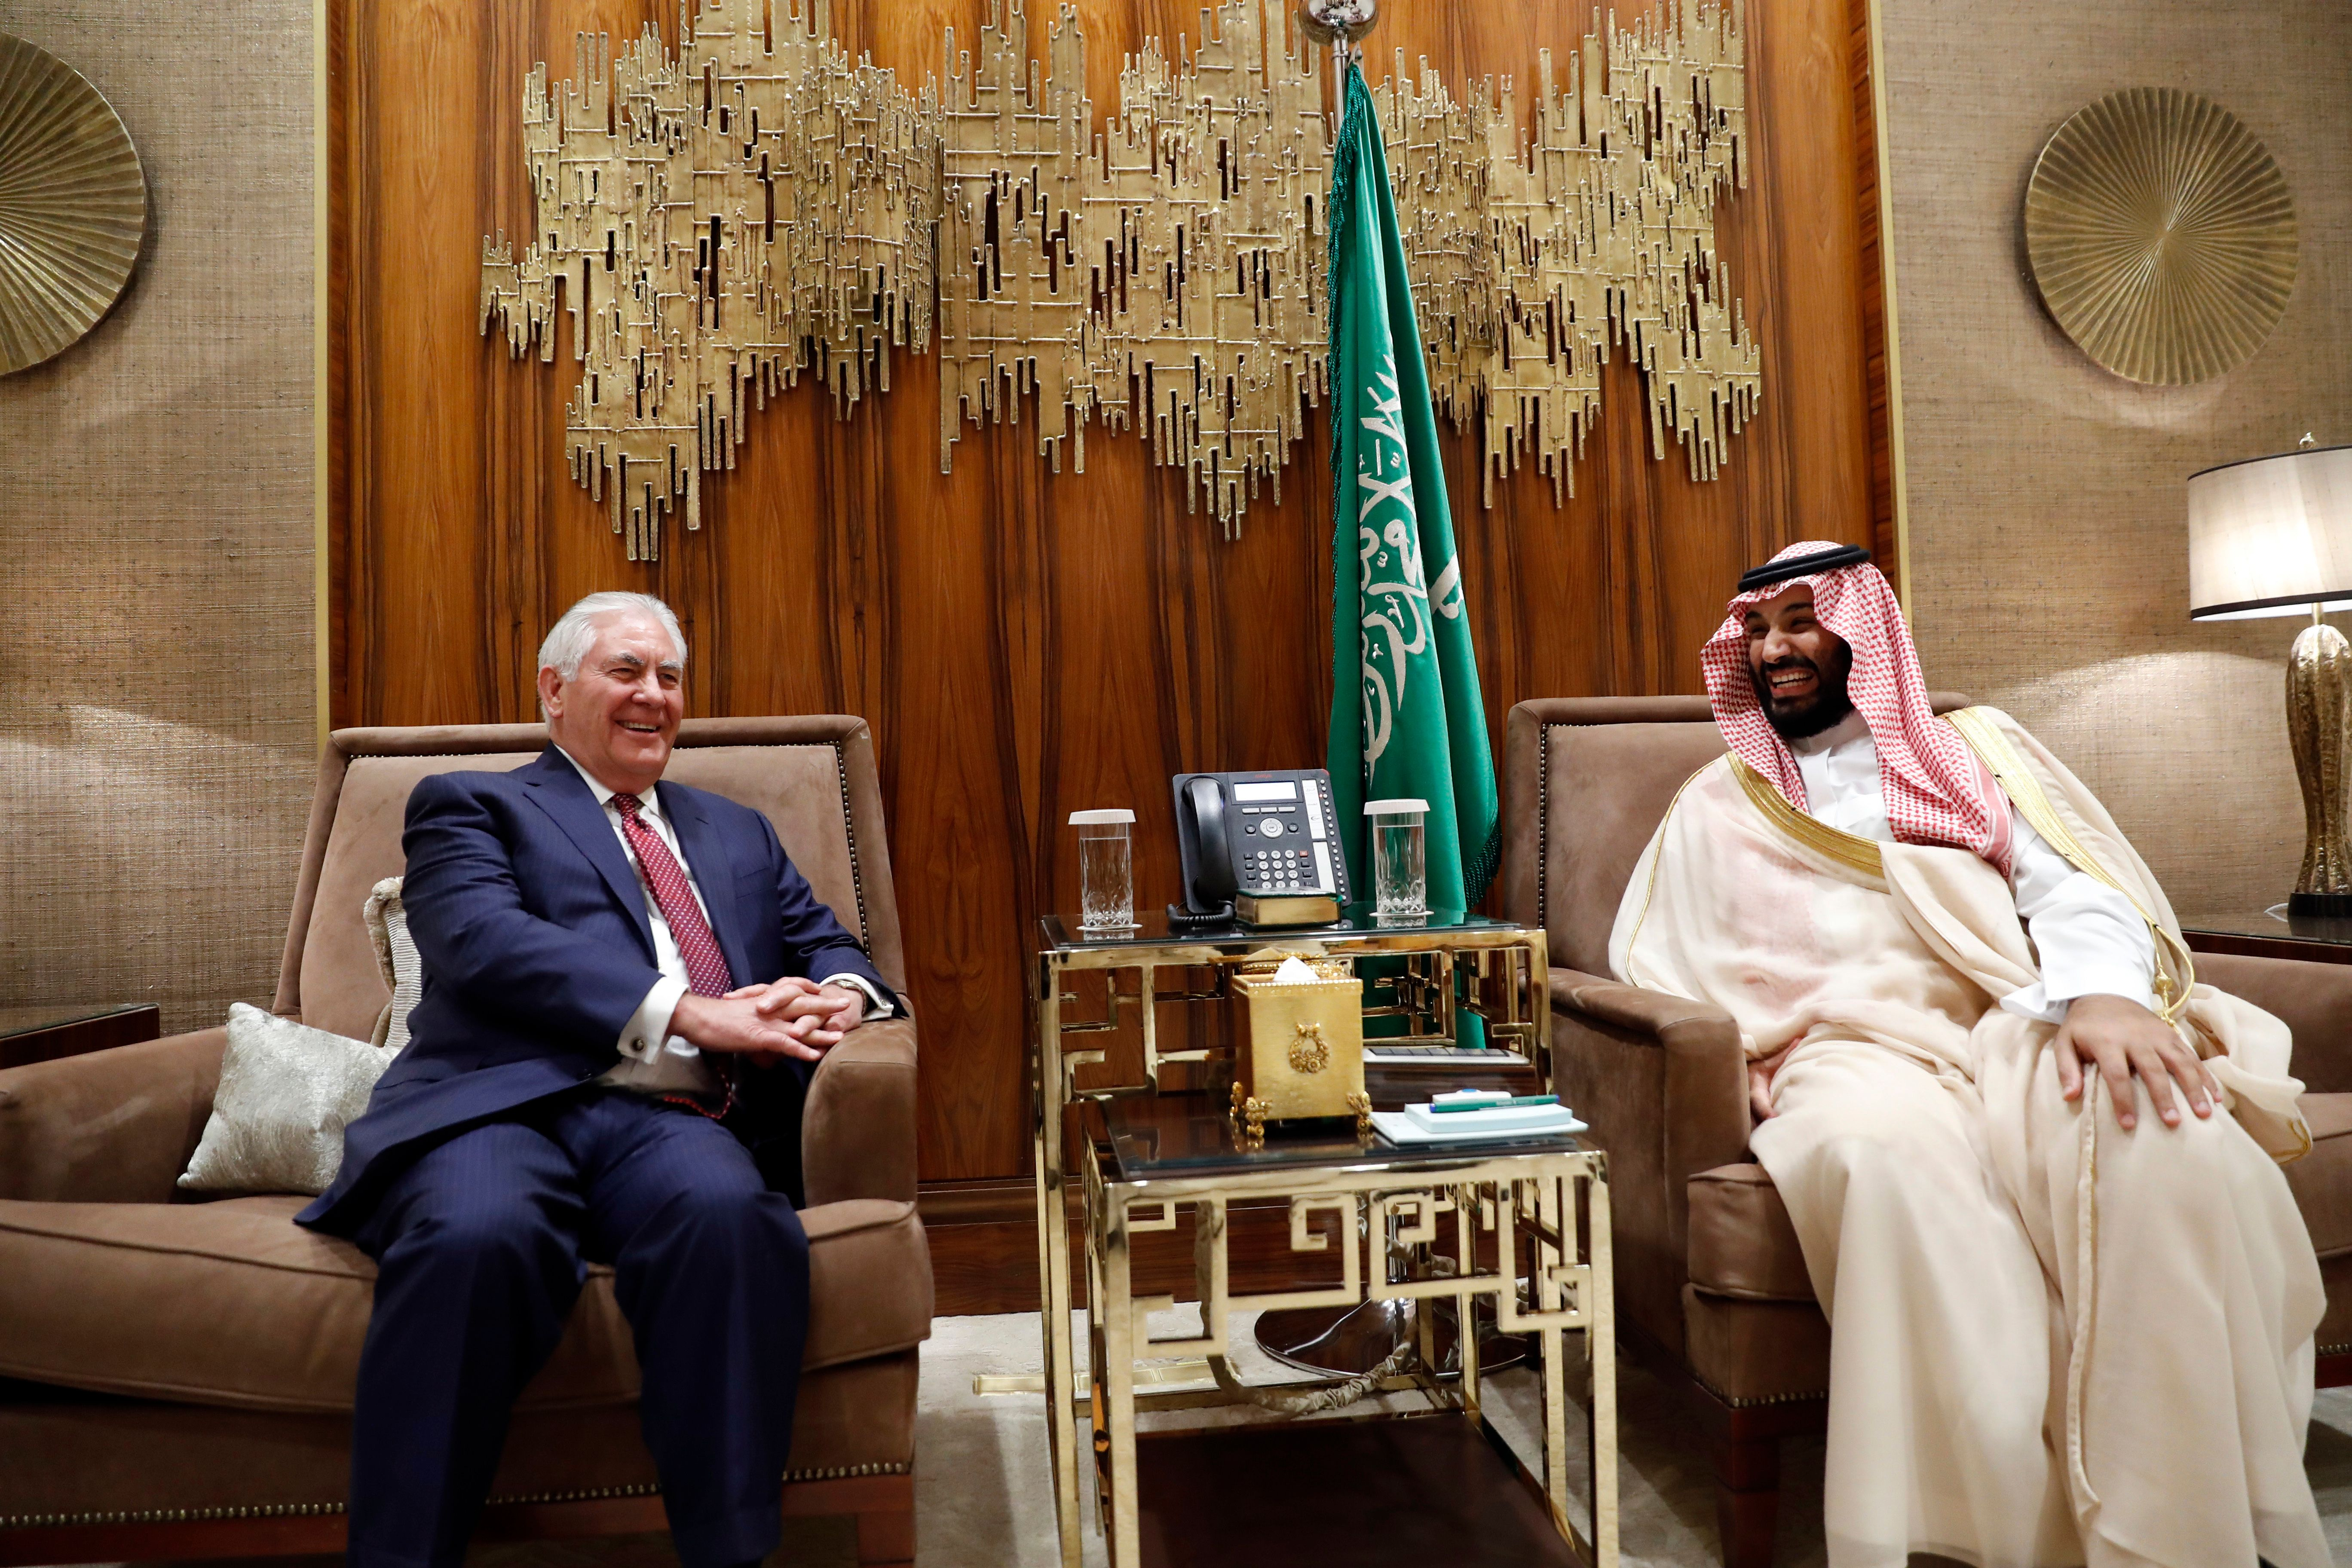 US Secretary of State Rex Tillerson meets with Saudi Crown Prince Mohammed bin Salman in Riyadh on October 22, 2017.